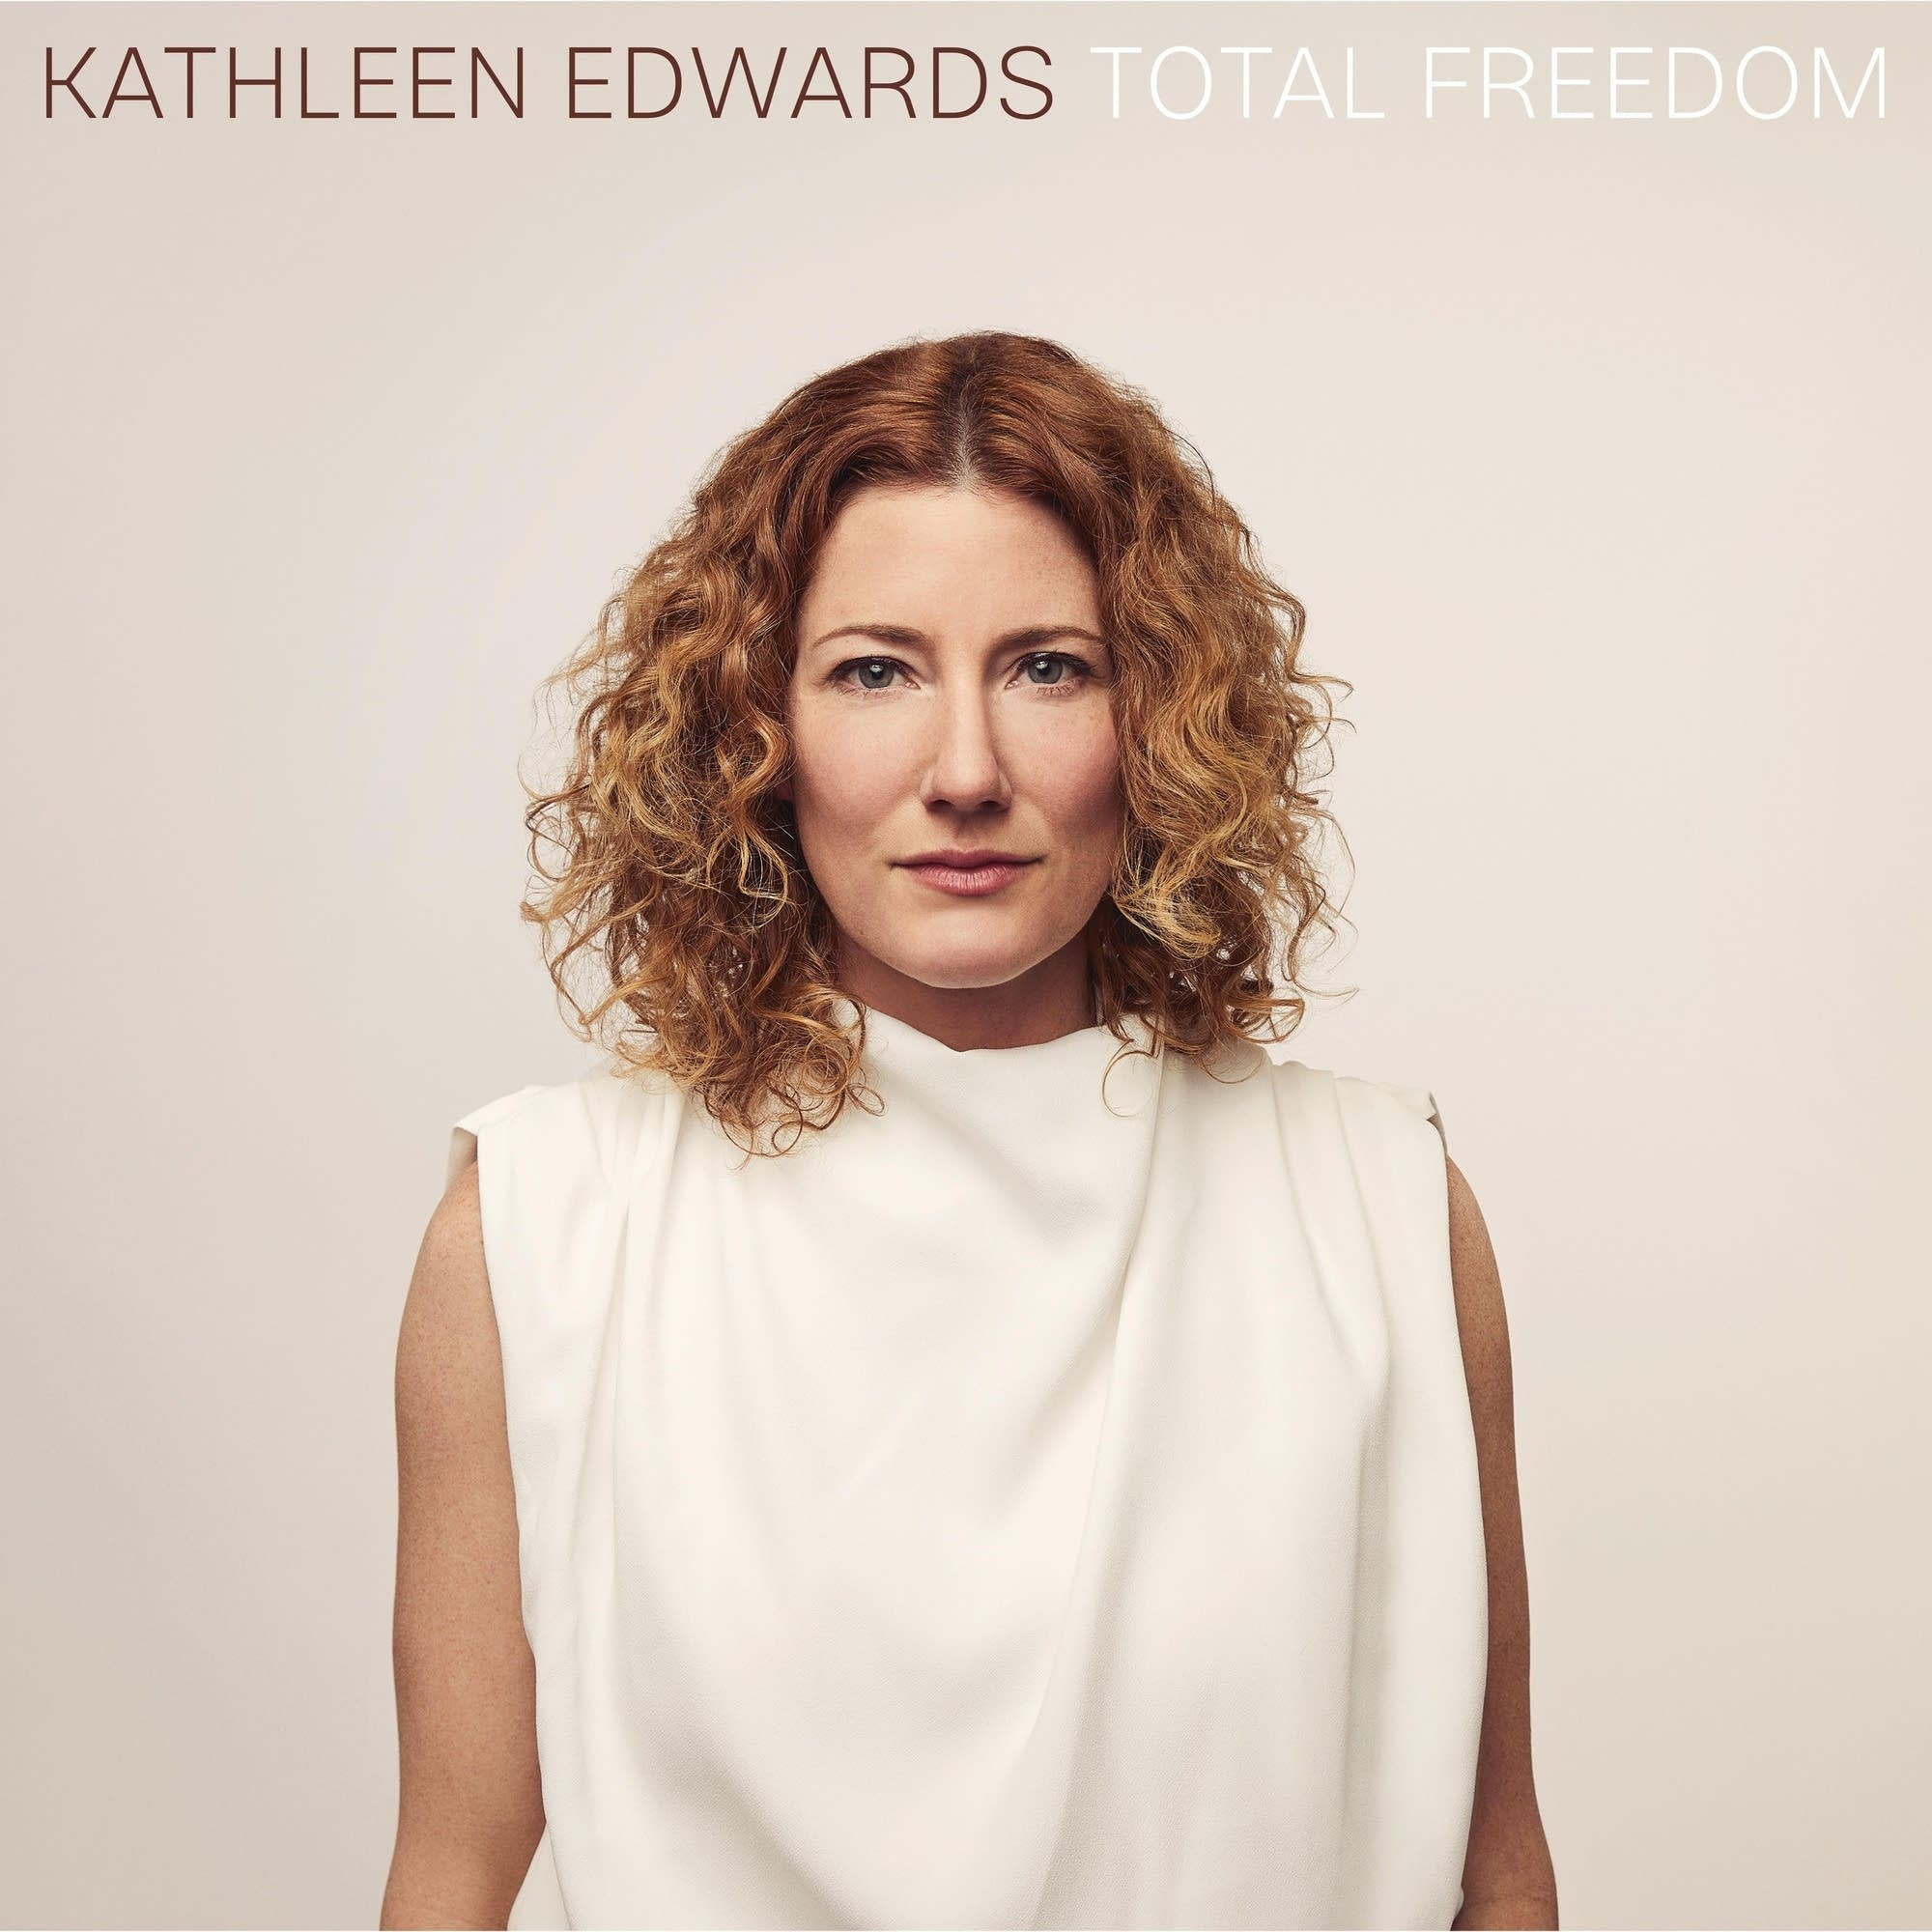 Kathleen Edwards, 'Total Freedom'